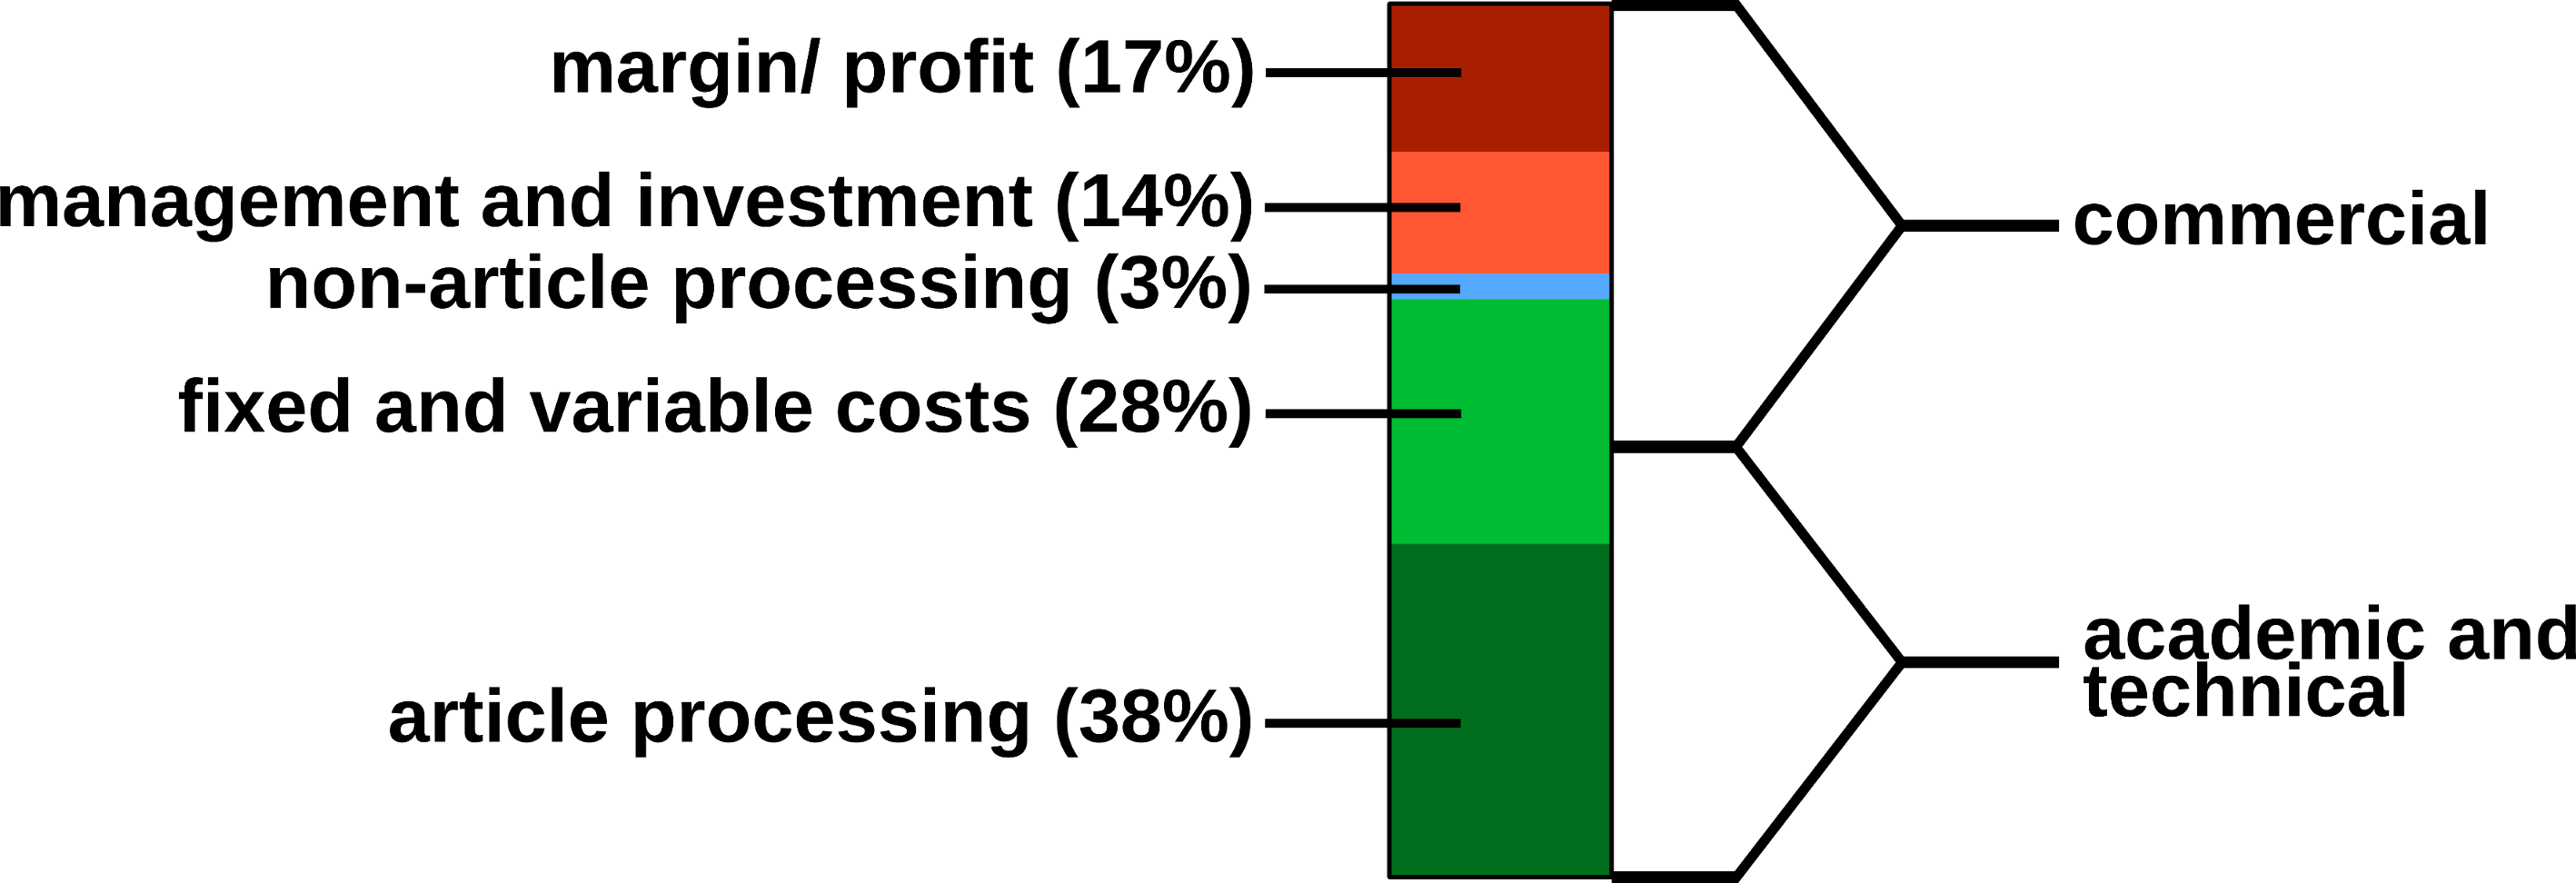 Estimated publishing cost for a hybrid journal (conventional with Open Access option). Data from (Houghton et al. 2009).